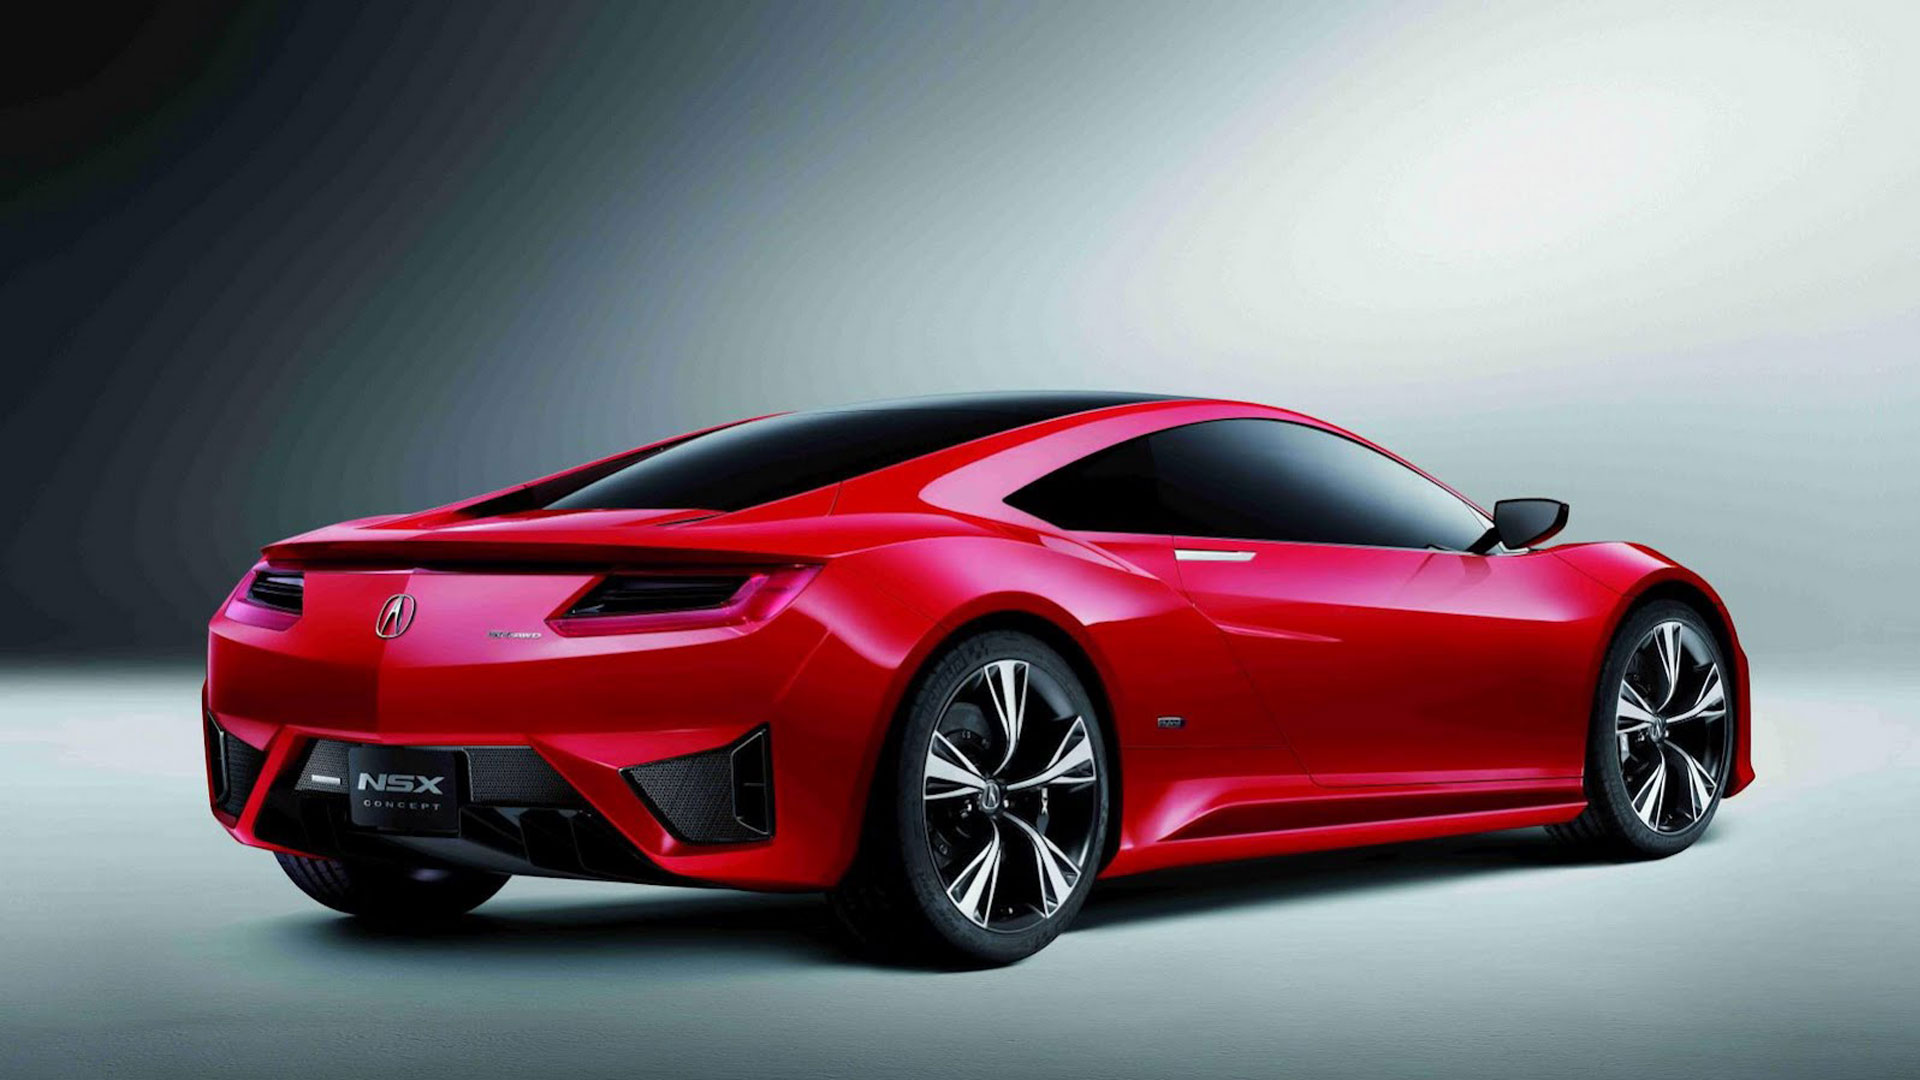 acura nsx red modification cars wallpaper 445 wallpaper walldiskpaper. Black Bedroom Furniture Sets. Home Design Ideas